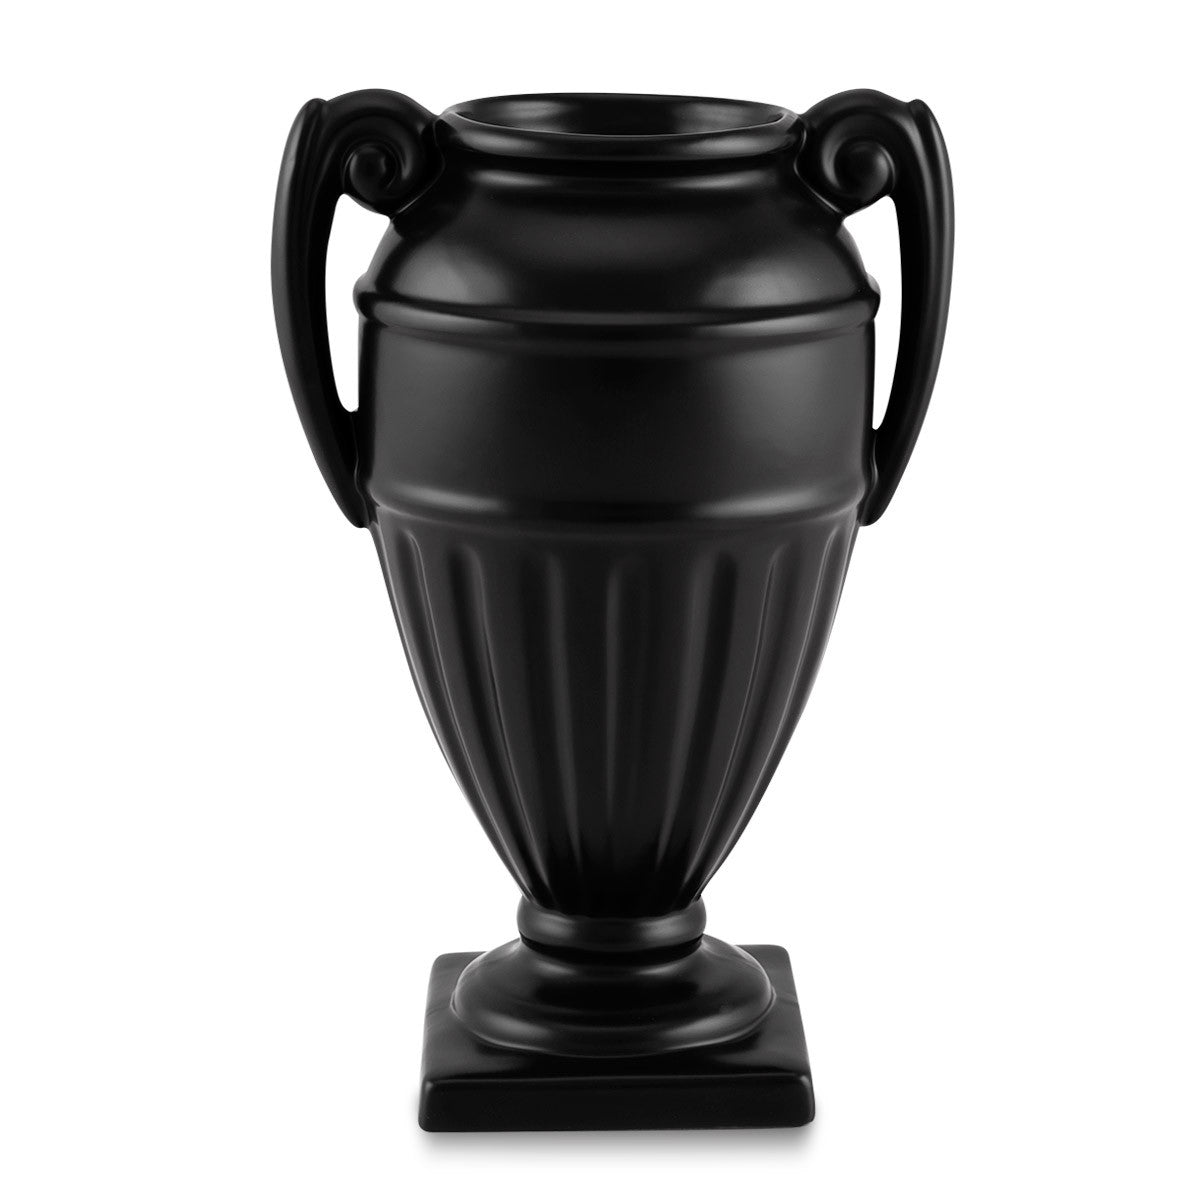 Hand-painted ceramic porcelain Arena vase finished in Black opaque.